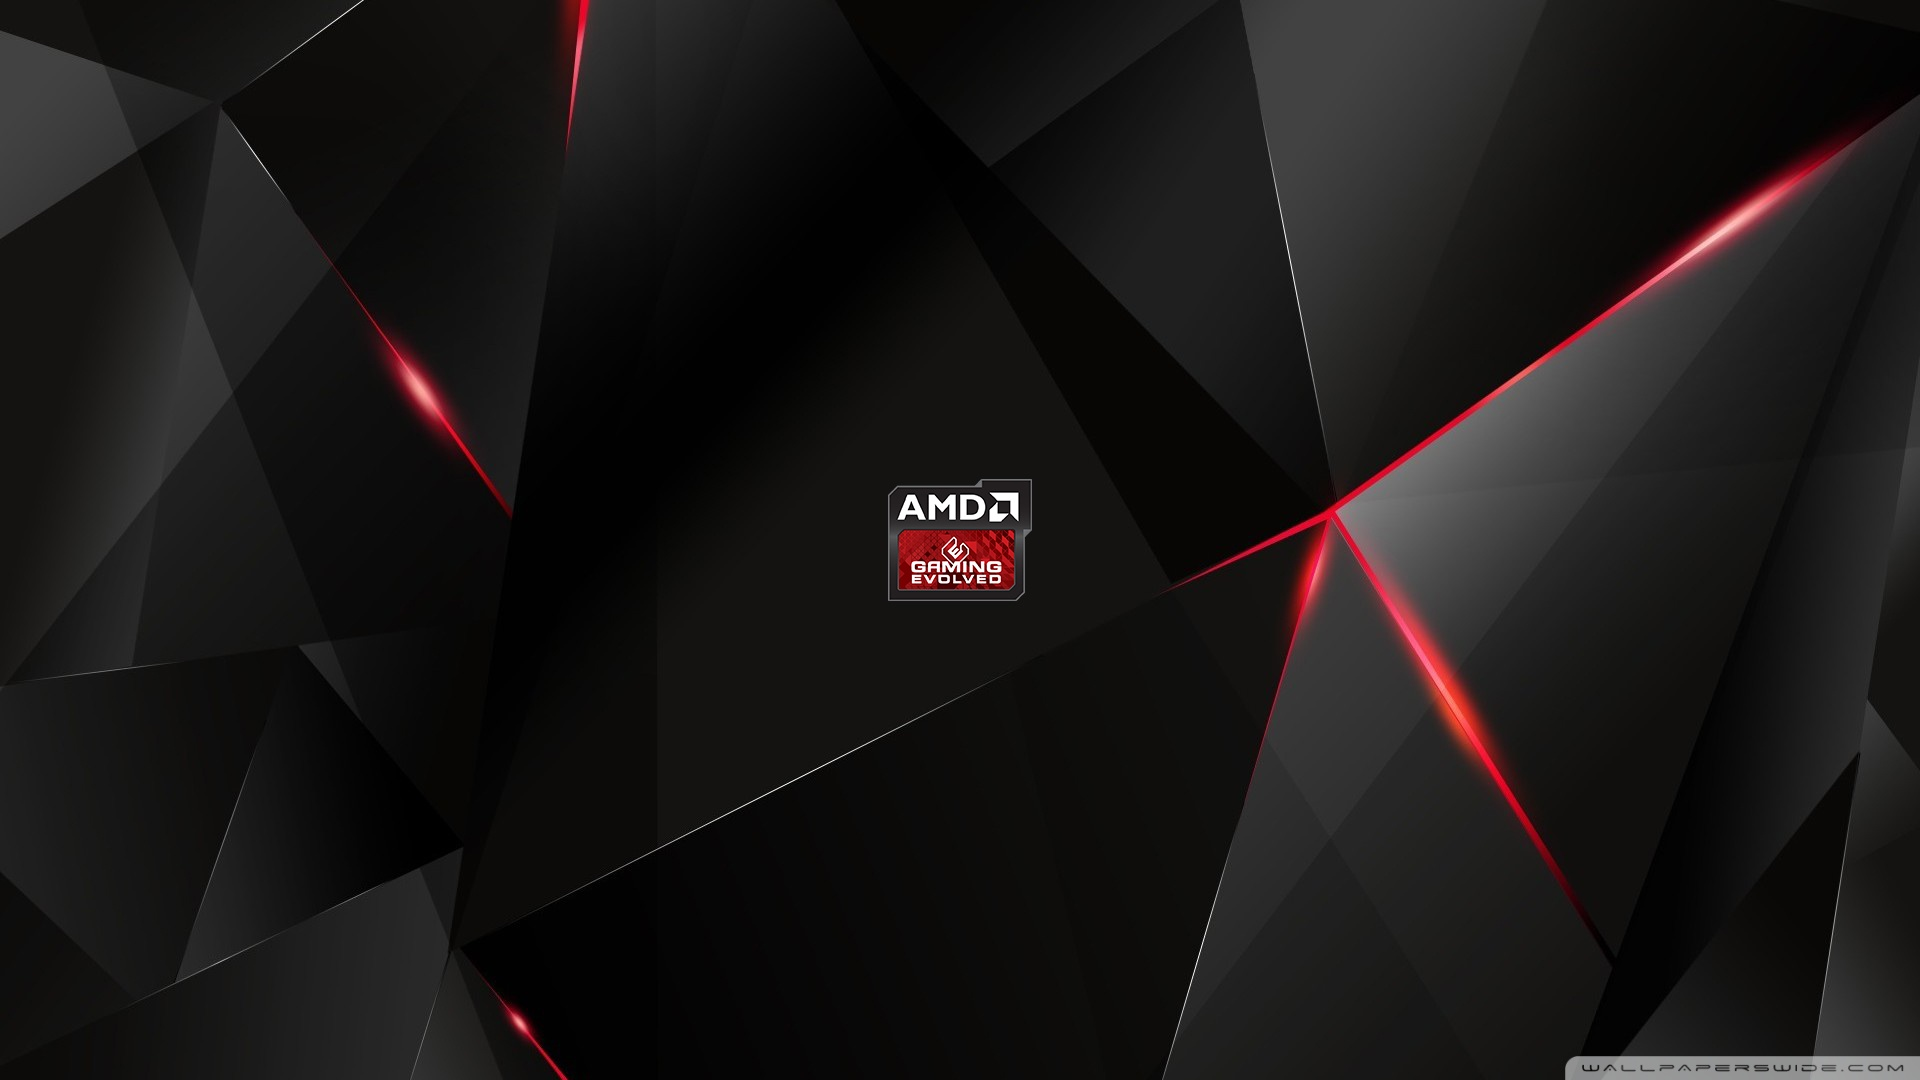 Amd Gaming Evolved Wallpaper